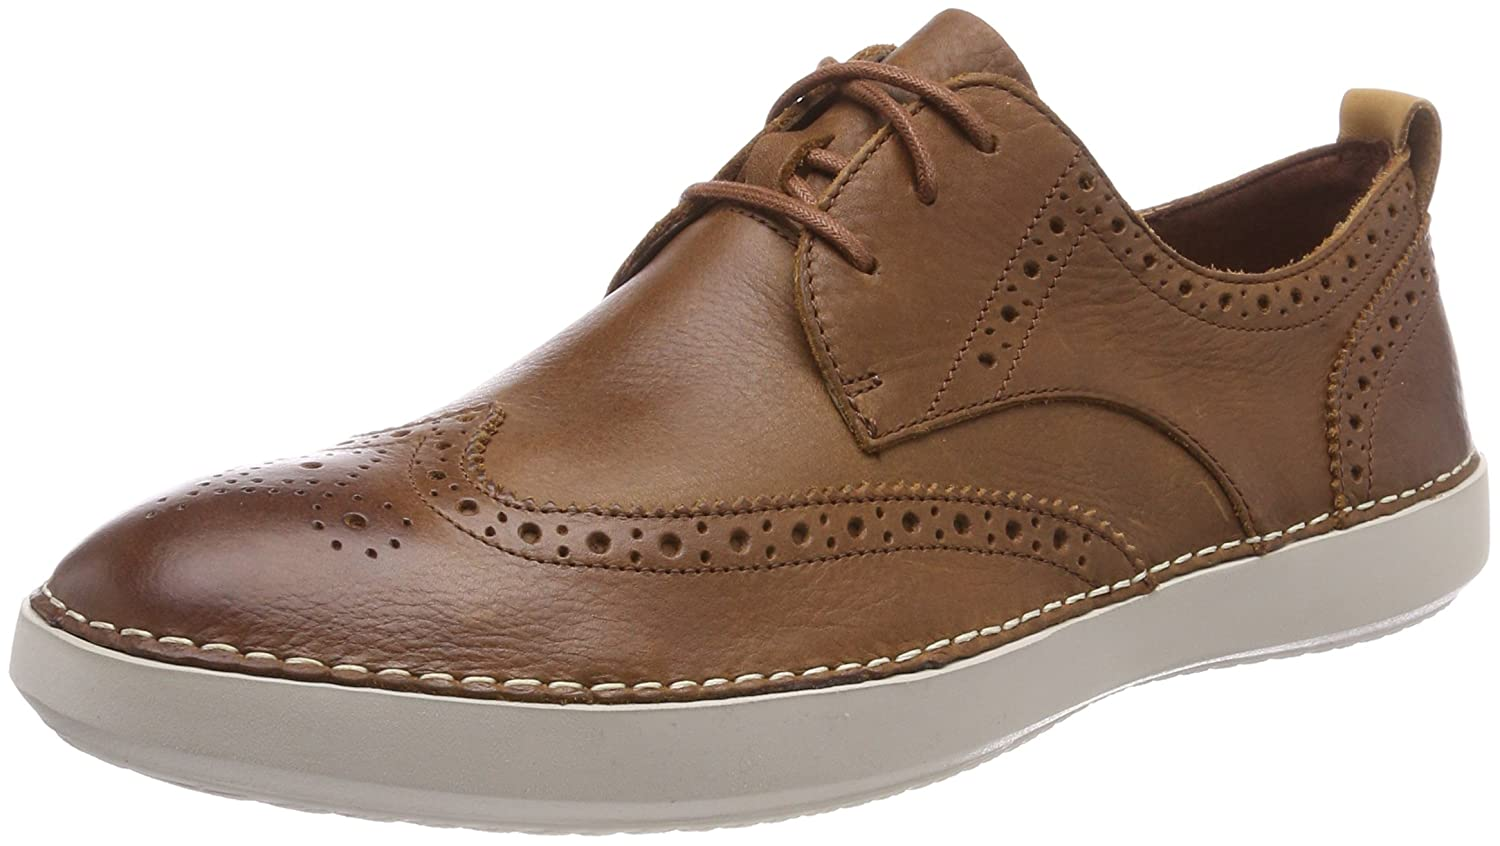 Park5 Stringata shoes Clarks Scarpa Pelle Marroni Amazon Stafford Classica 203585937 ulc5FJKT13